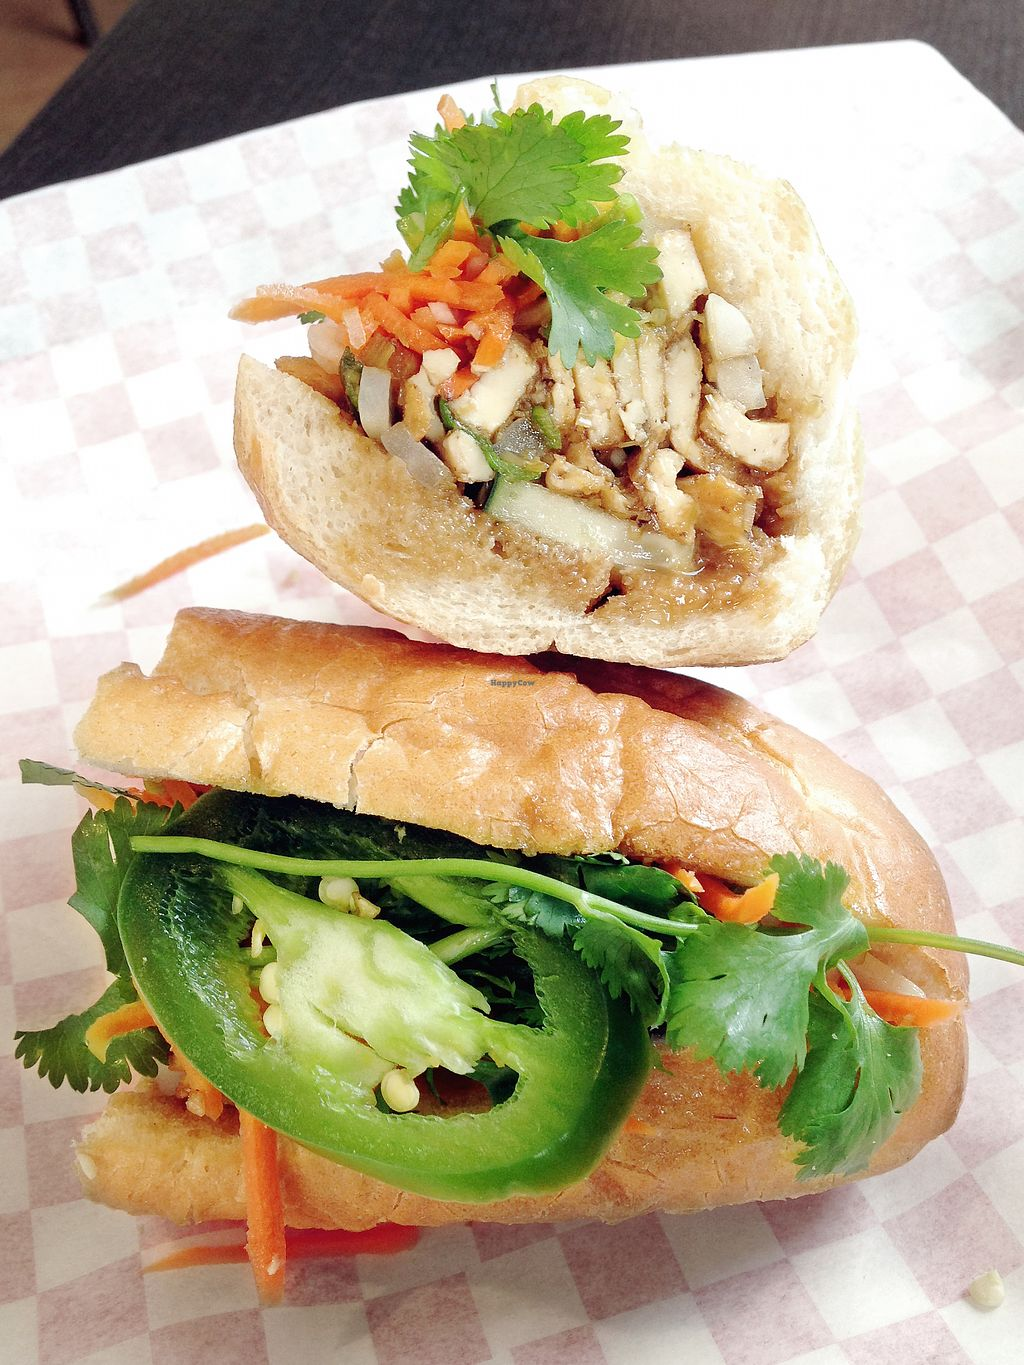 """Photo of Pho Hut & Grill  by <a href=""""/members/profile/KellyBone"""">KellyBone</a> <br/>Banh Mi <br/> July 23, 2017  - <a href='/contact/abuse/image/96632/283469'>Report</a>"""